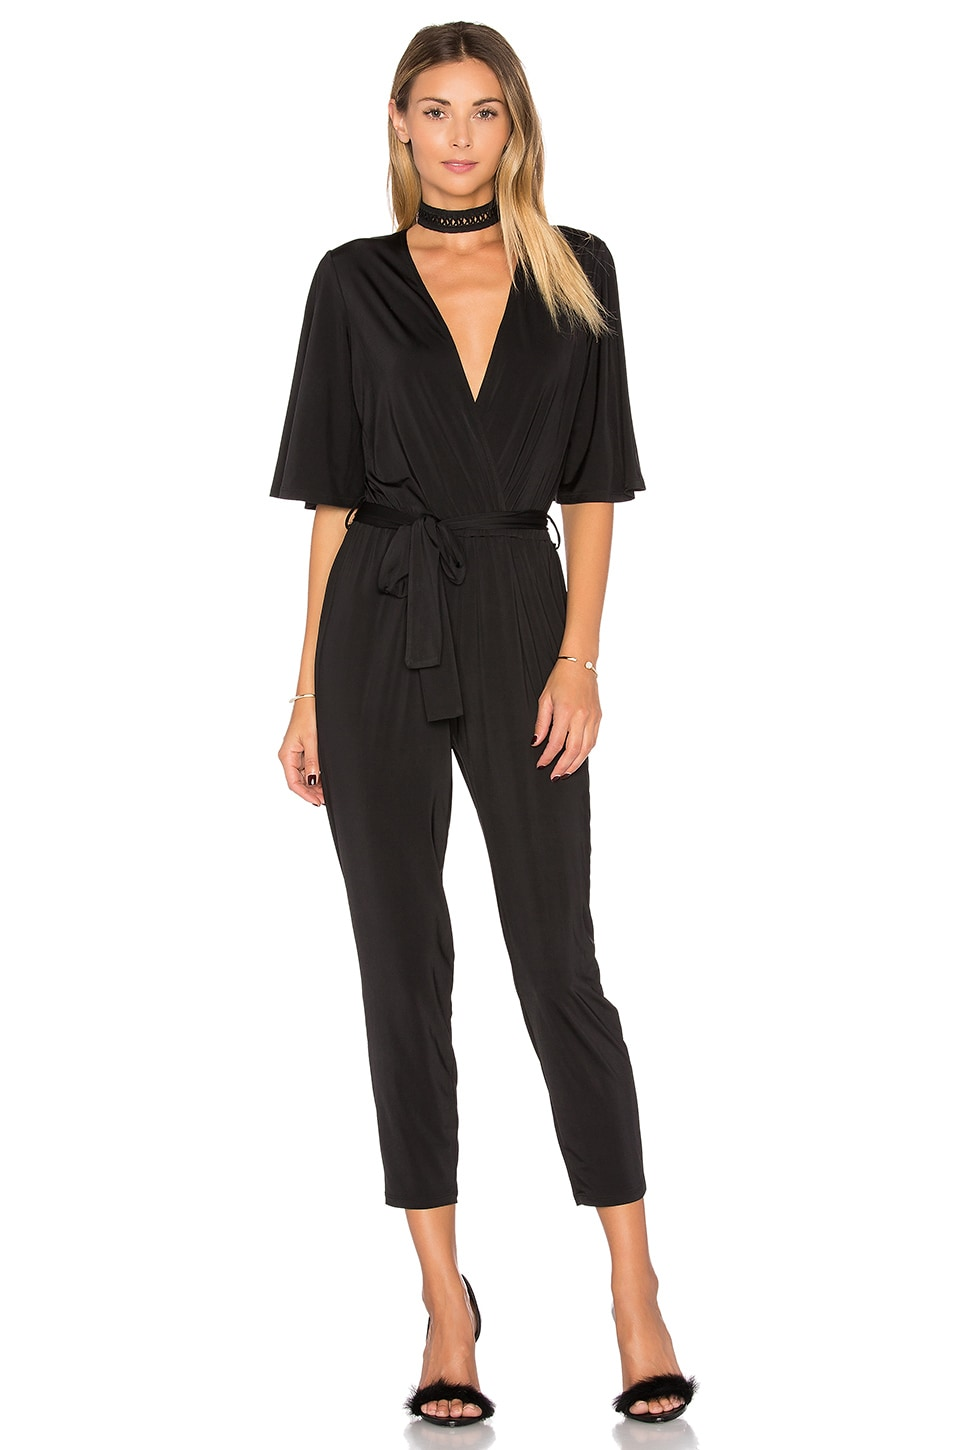 Lovers + Friends Kylie Jumpsuit in Black